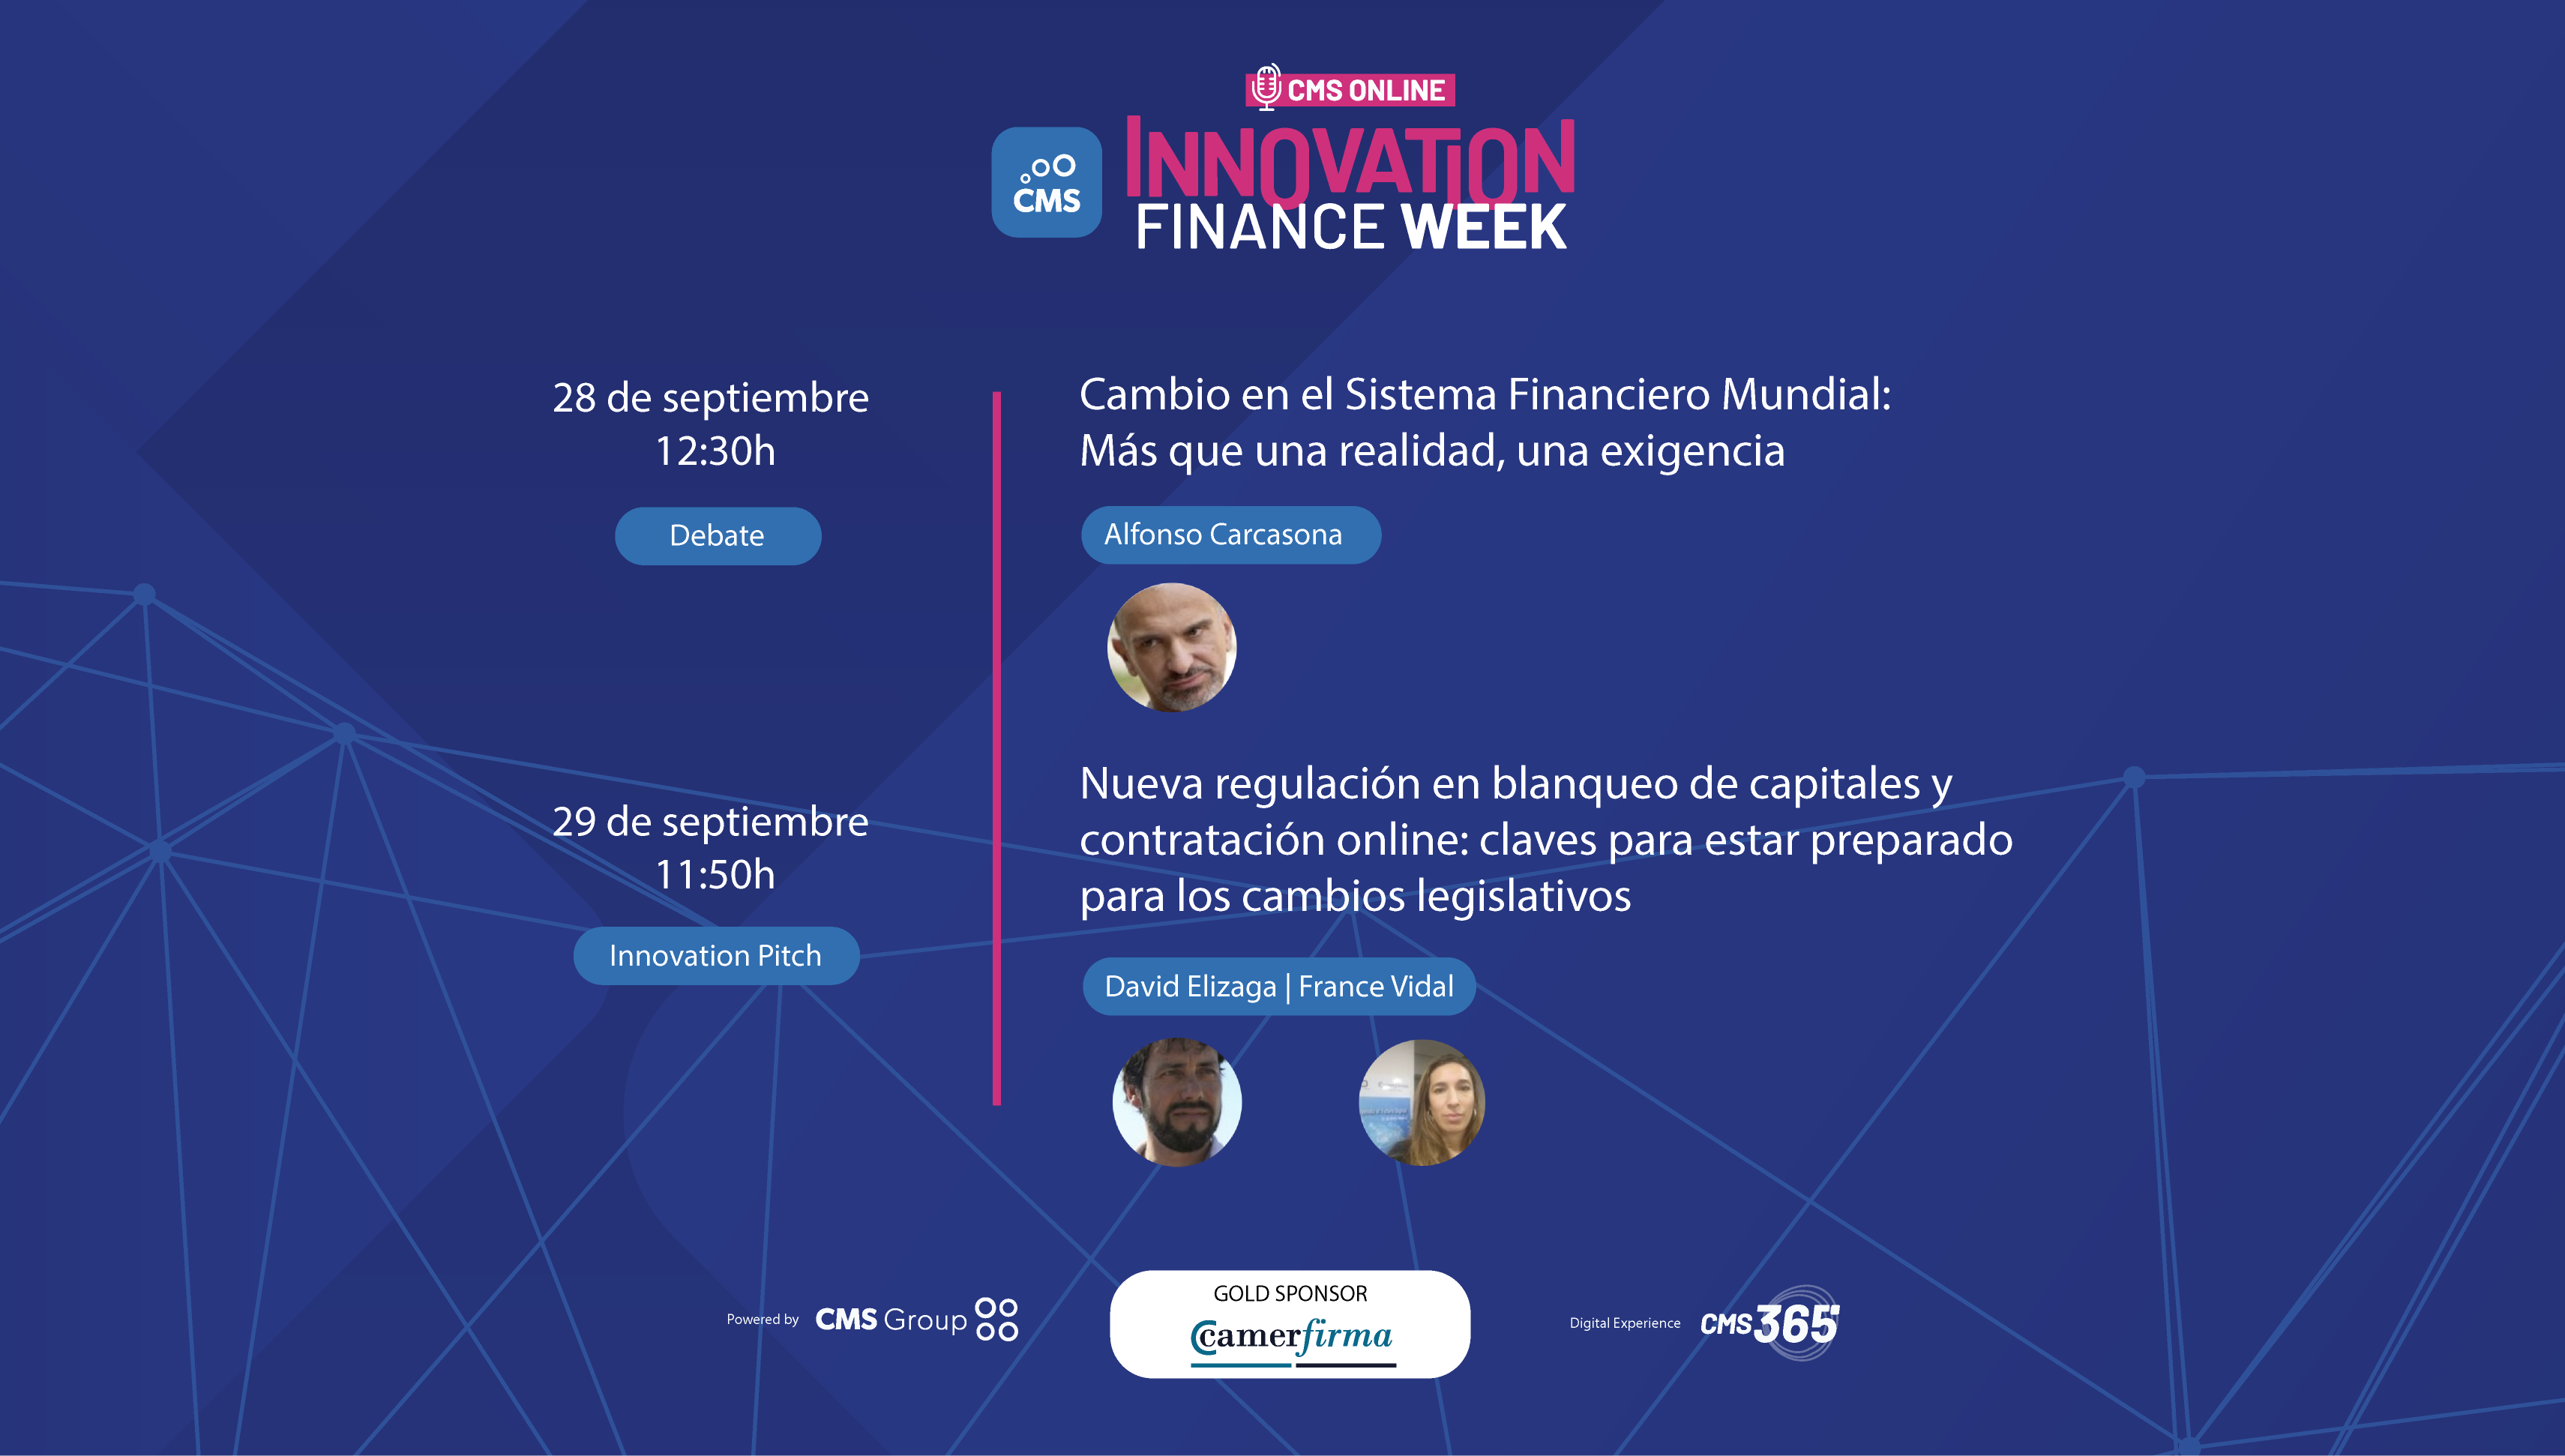 Innovation Finance Week